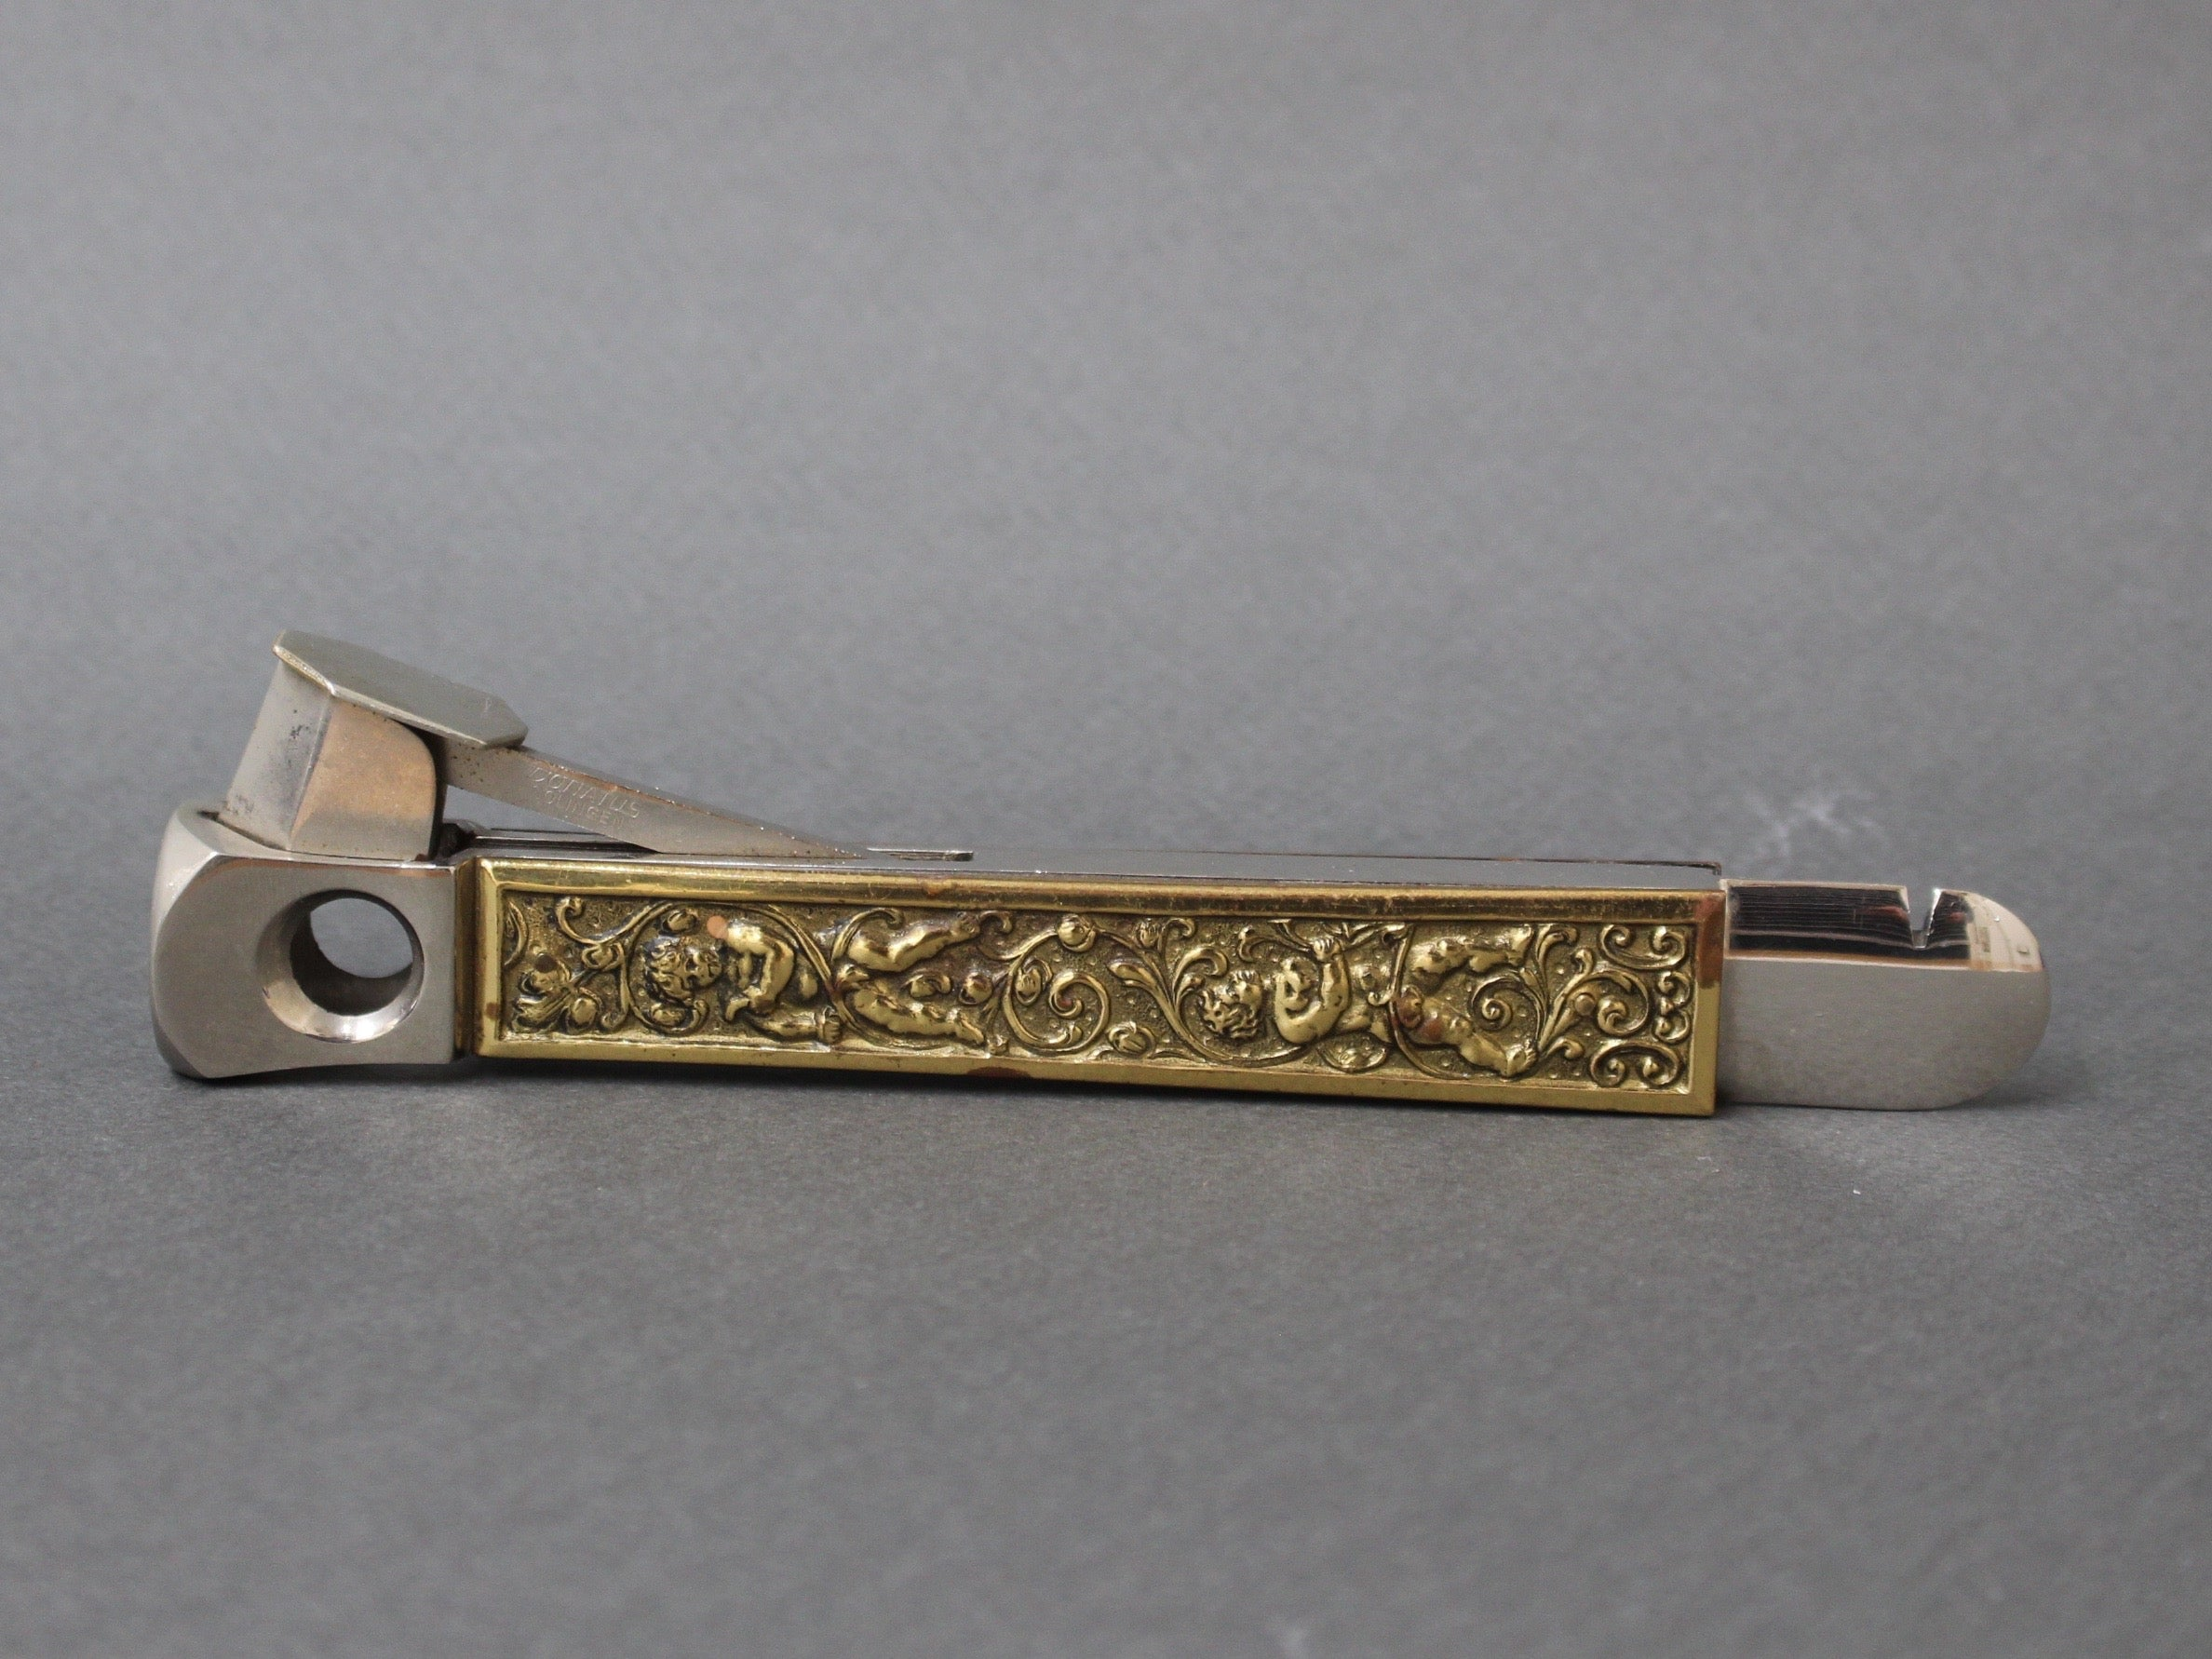 Stainless Steel German Vintage Cigar Cutter from Donatus Solingen (circa 1950s)